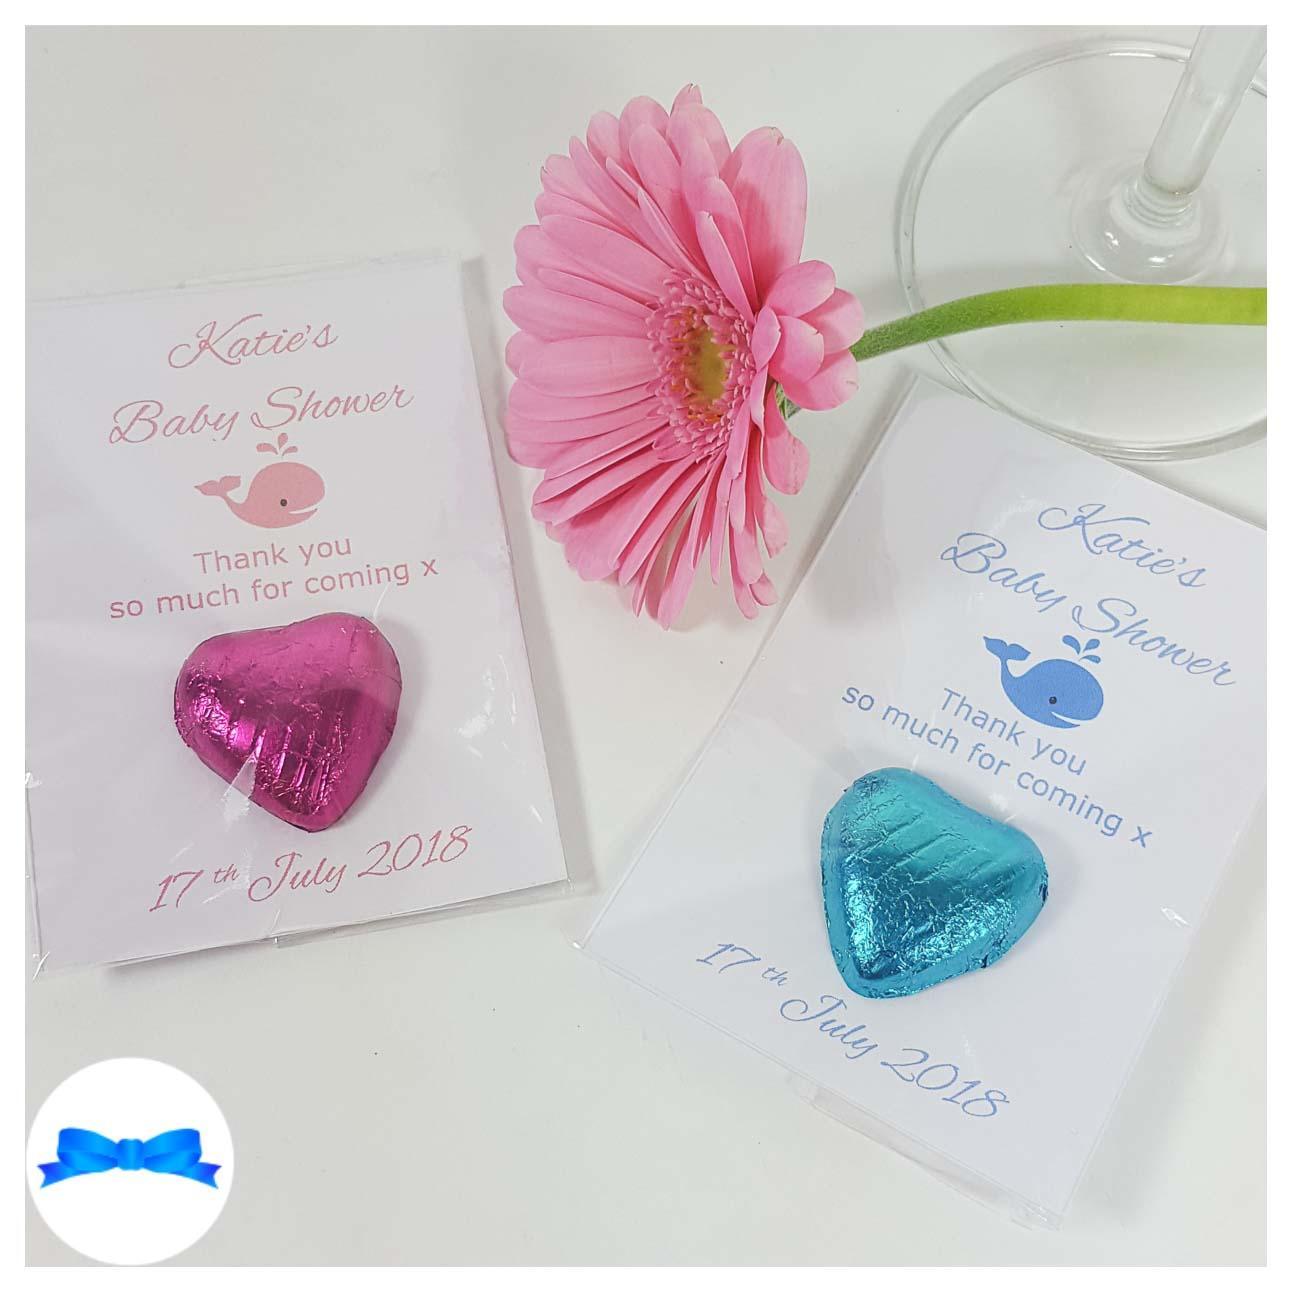 Baby shower chocolate heart favours with pink and blue whales